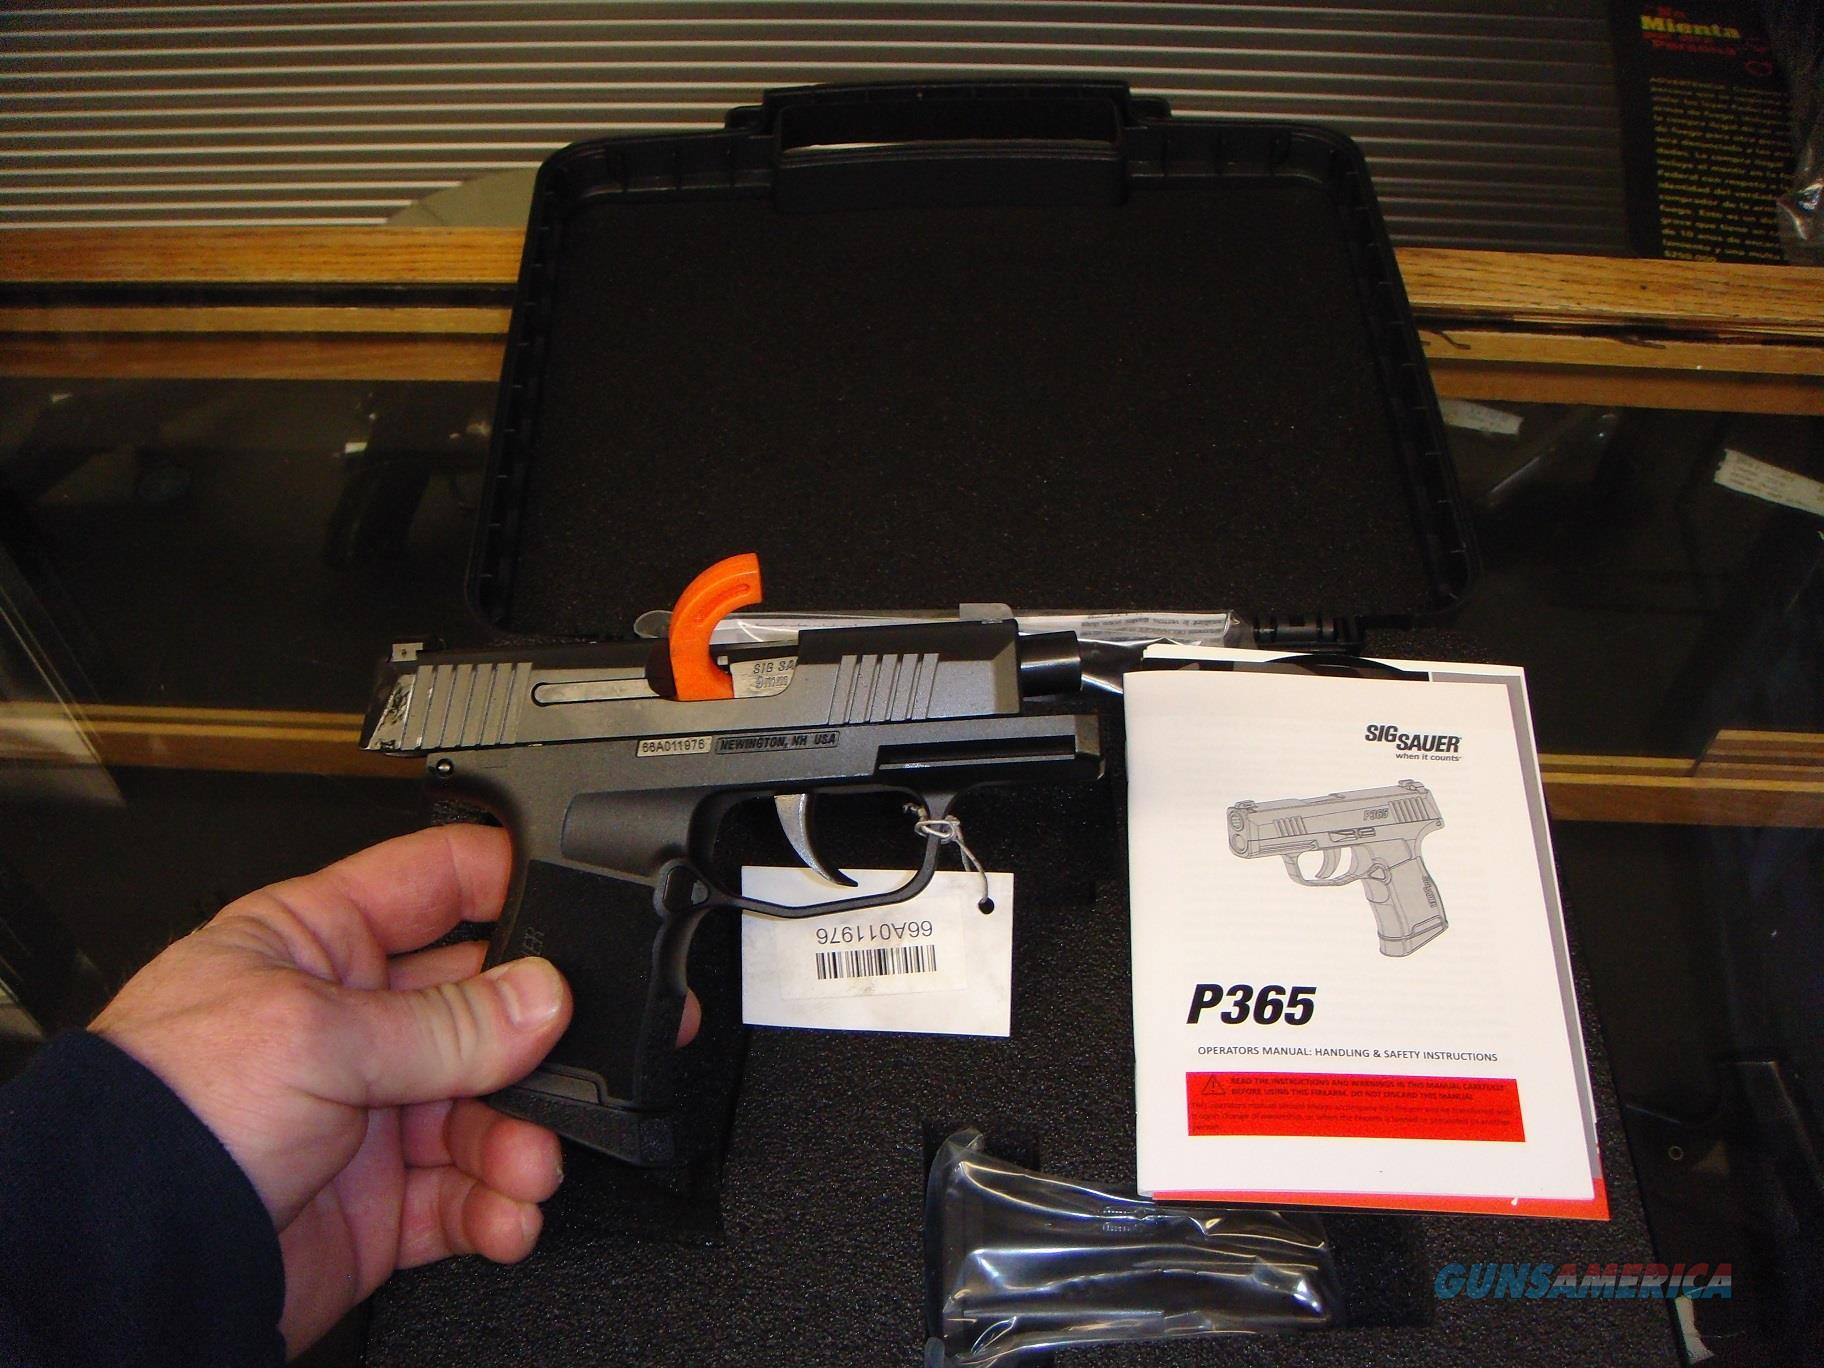 Sig Sauer P365 9mm Micro Compact Striker-Fired Pistol  Guns > Pistols > Sig - Sauer/Sigarms Pistols > P365